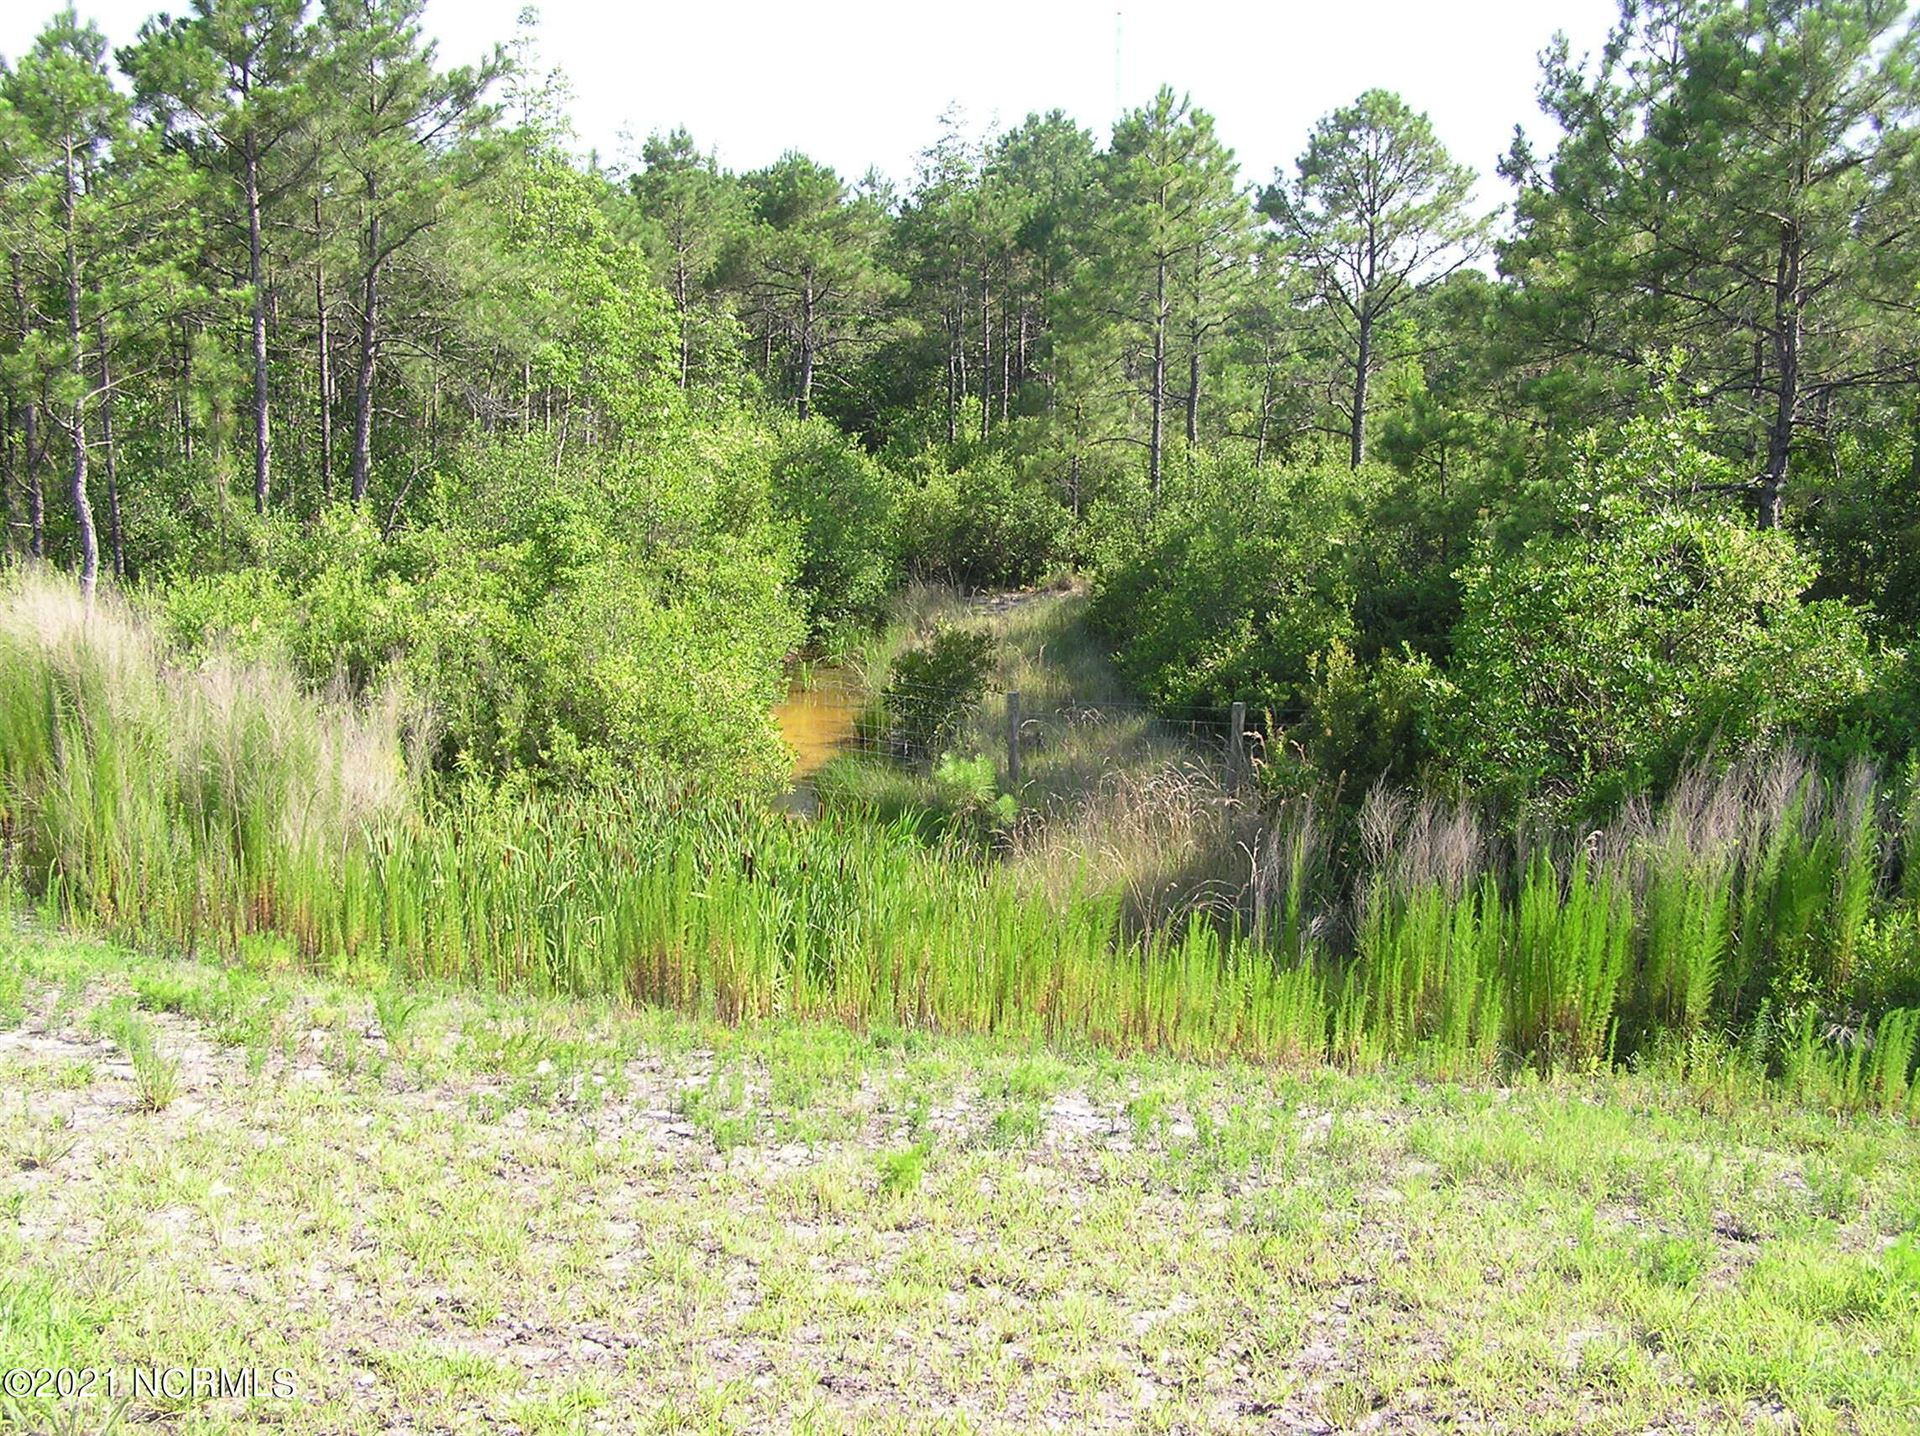 Photo of Lot 290 Greenview Ranches, Wilmington, NC 28411 (MLS # 100262203)